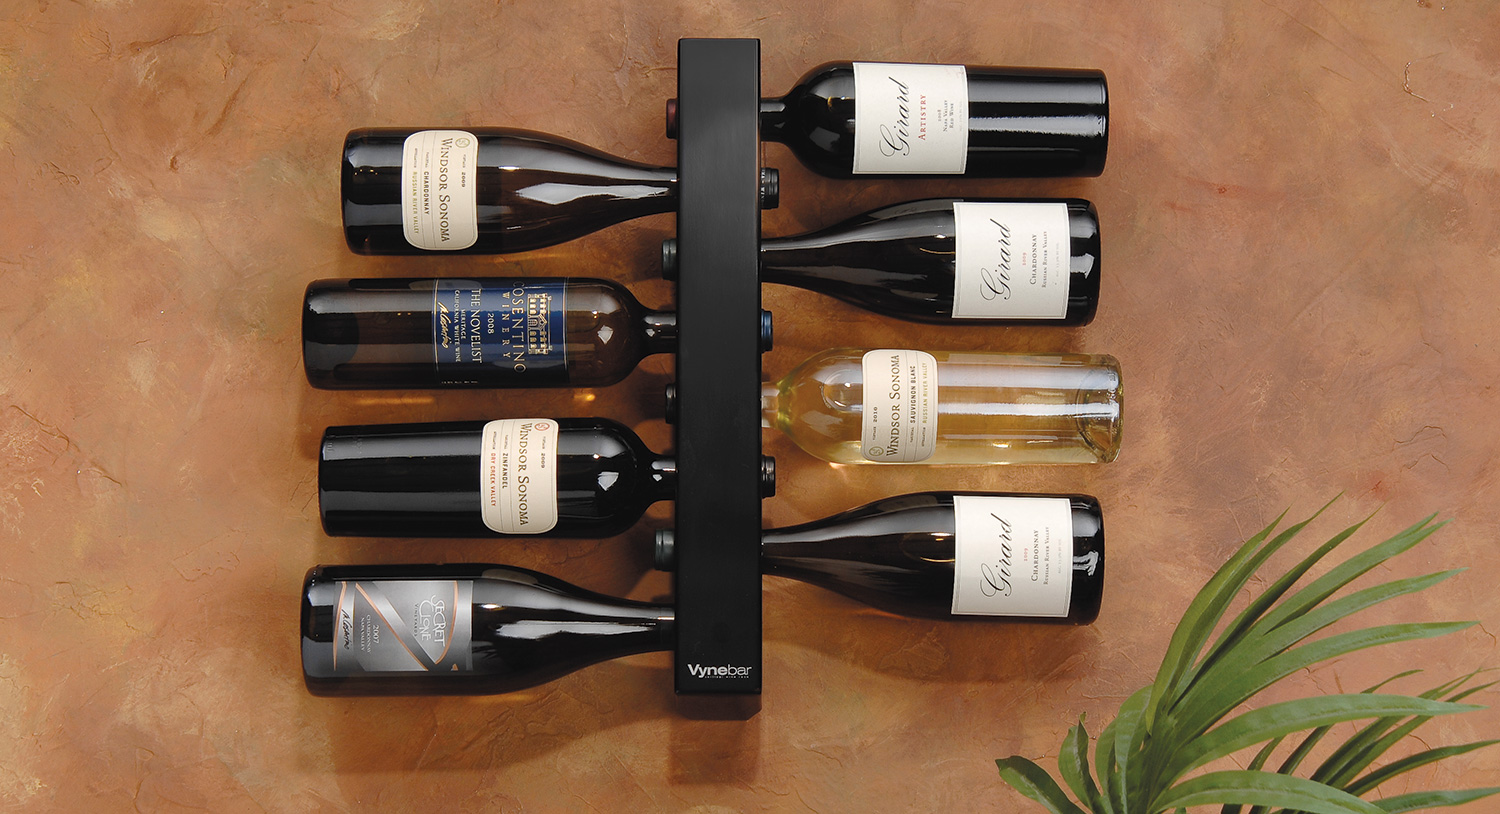 Chic and innovative, the Vynebar Vertical Racks are designed to eliminate countertop clutter and display wine in a unique, fun and stylish way.